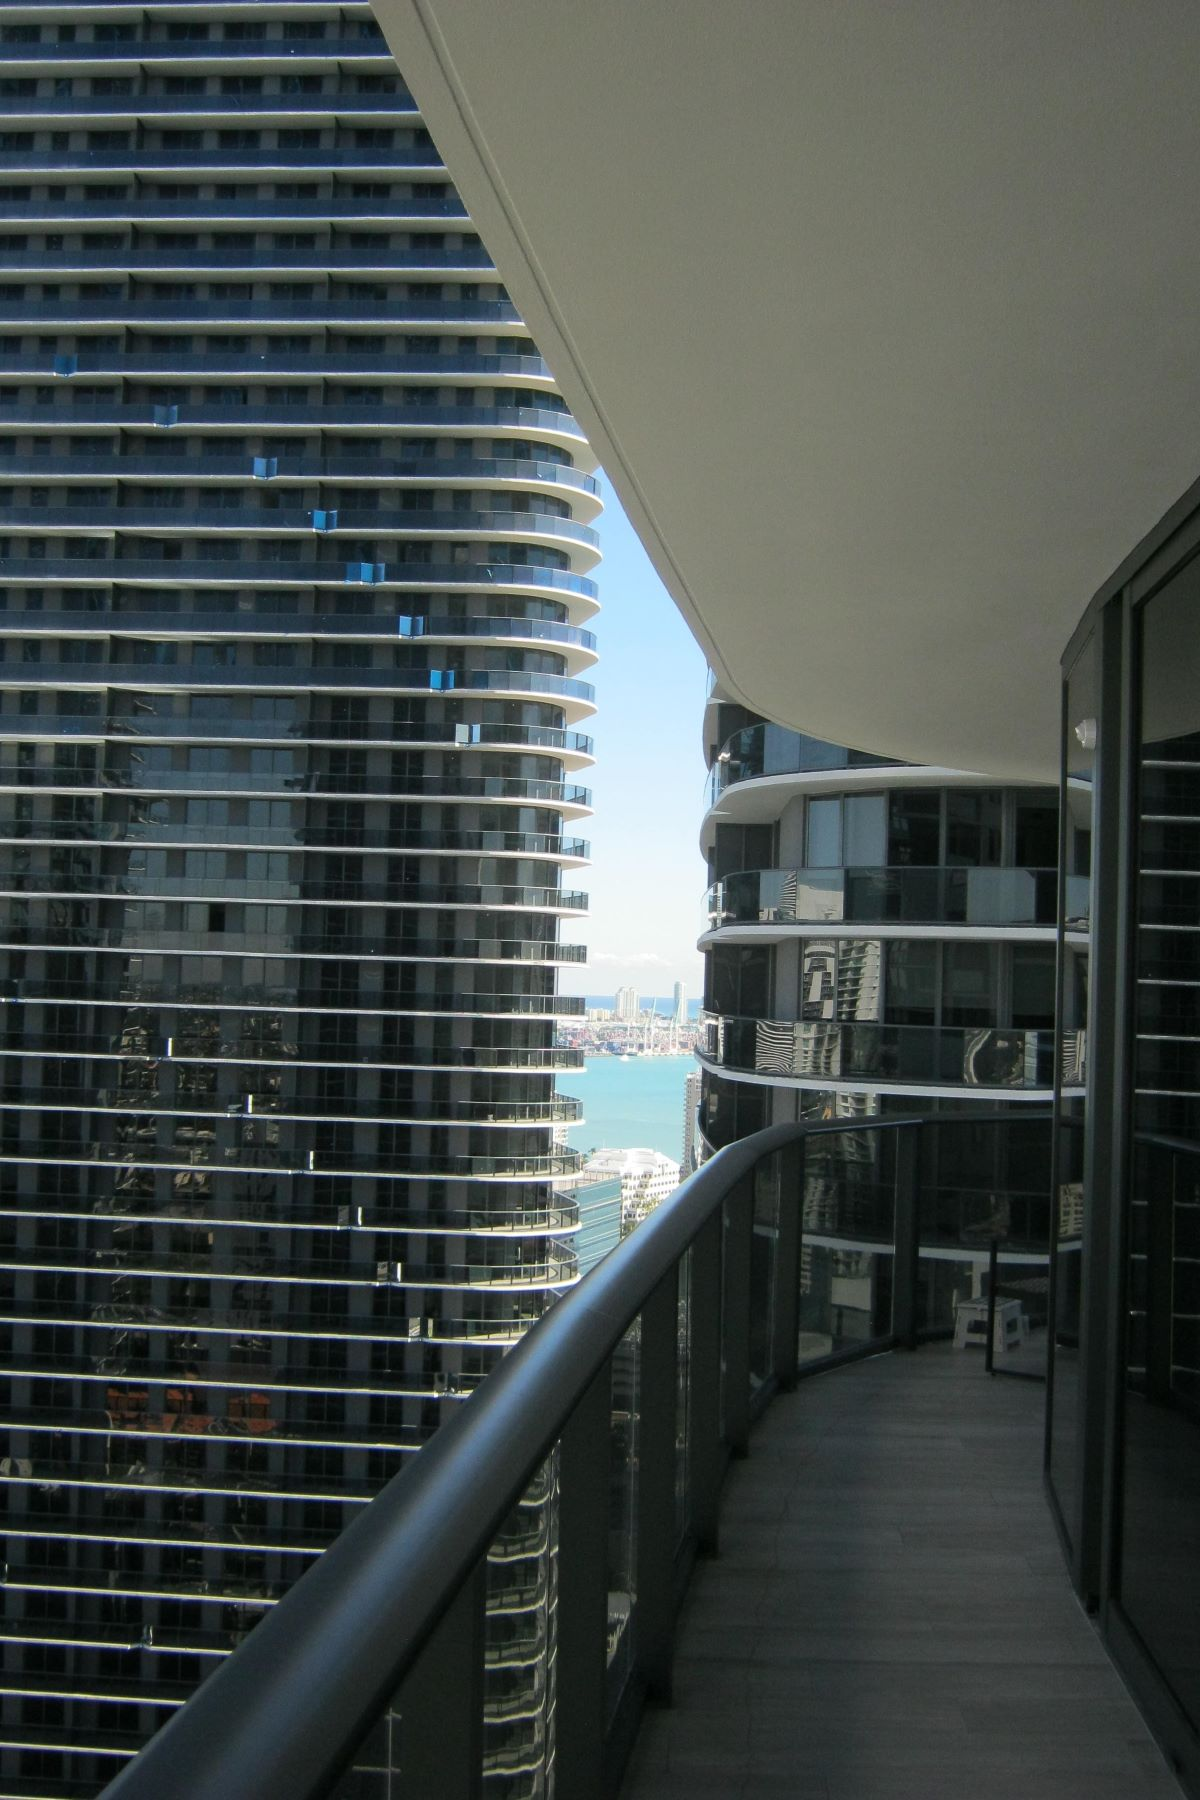 Additional photo for property listing at 55 Sw 9th St 55 Sw 9th St 3201 Miami, Florida 33130 Estados Unidos